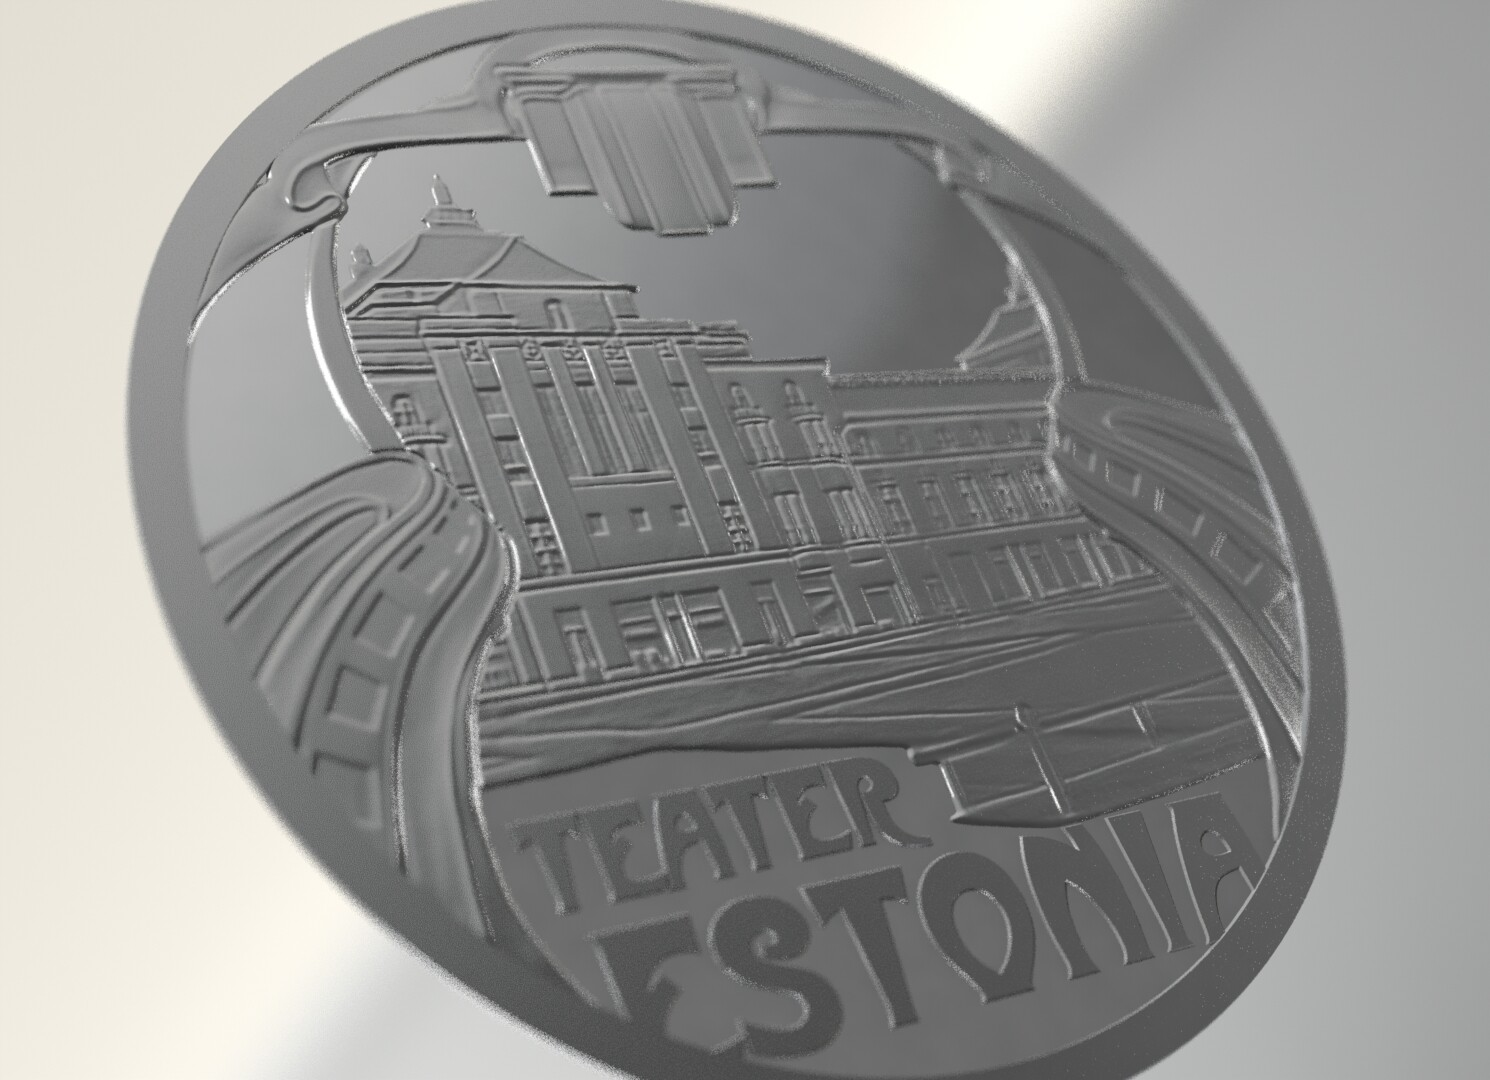 Relief for Estonian theatre coin